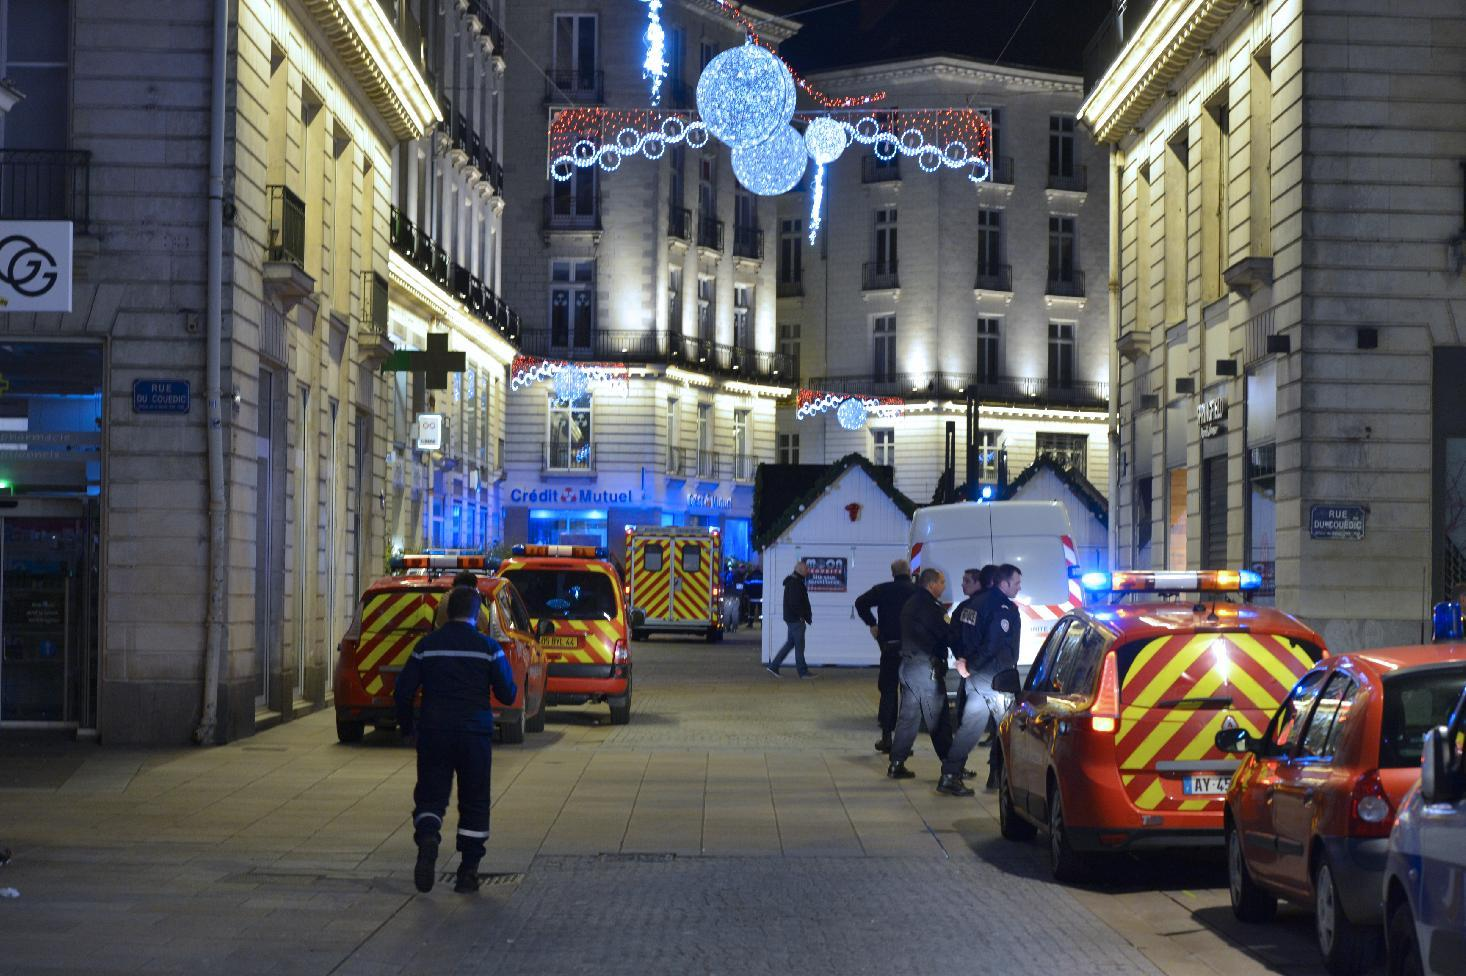 Ten injured in van attack on French Christmas market